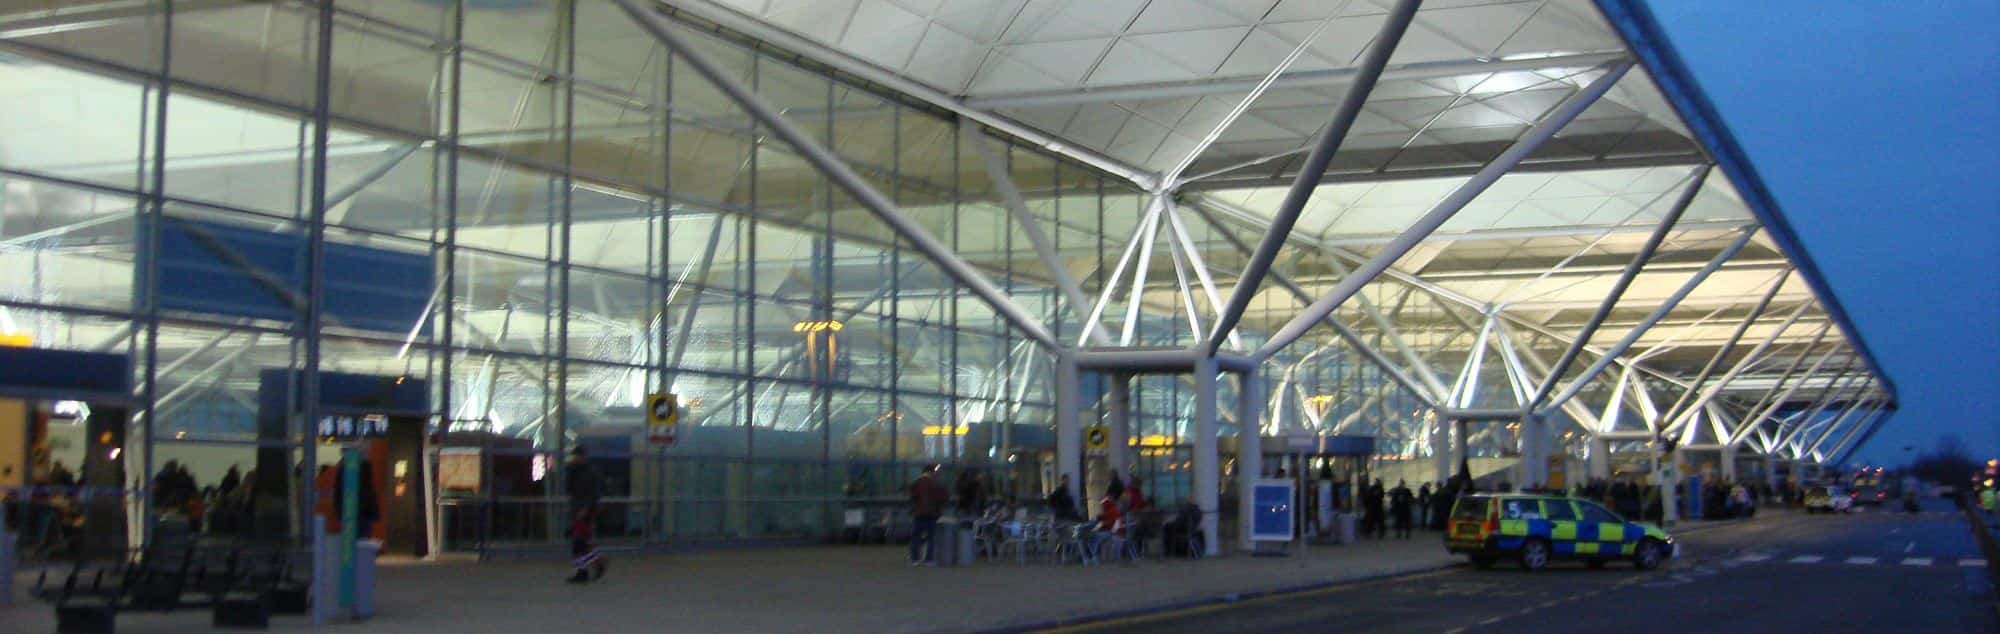 Flughafen london-stansted